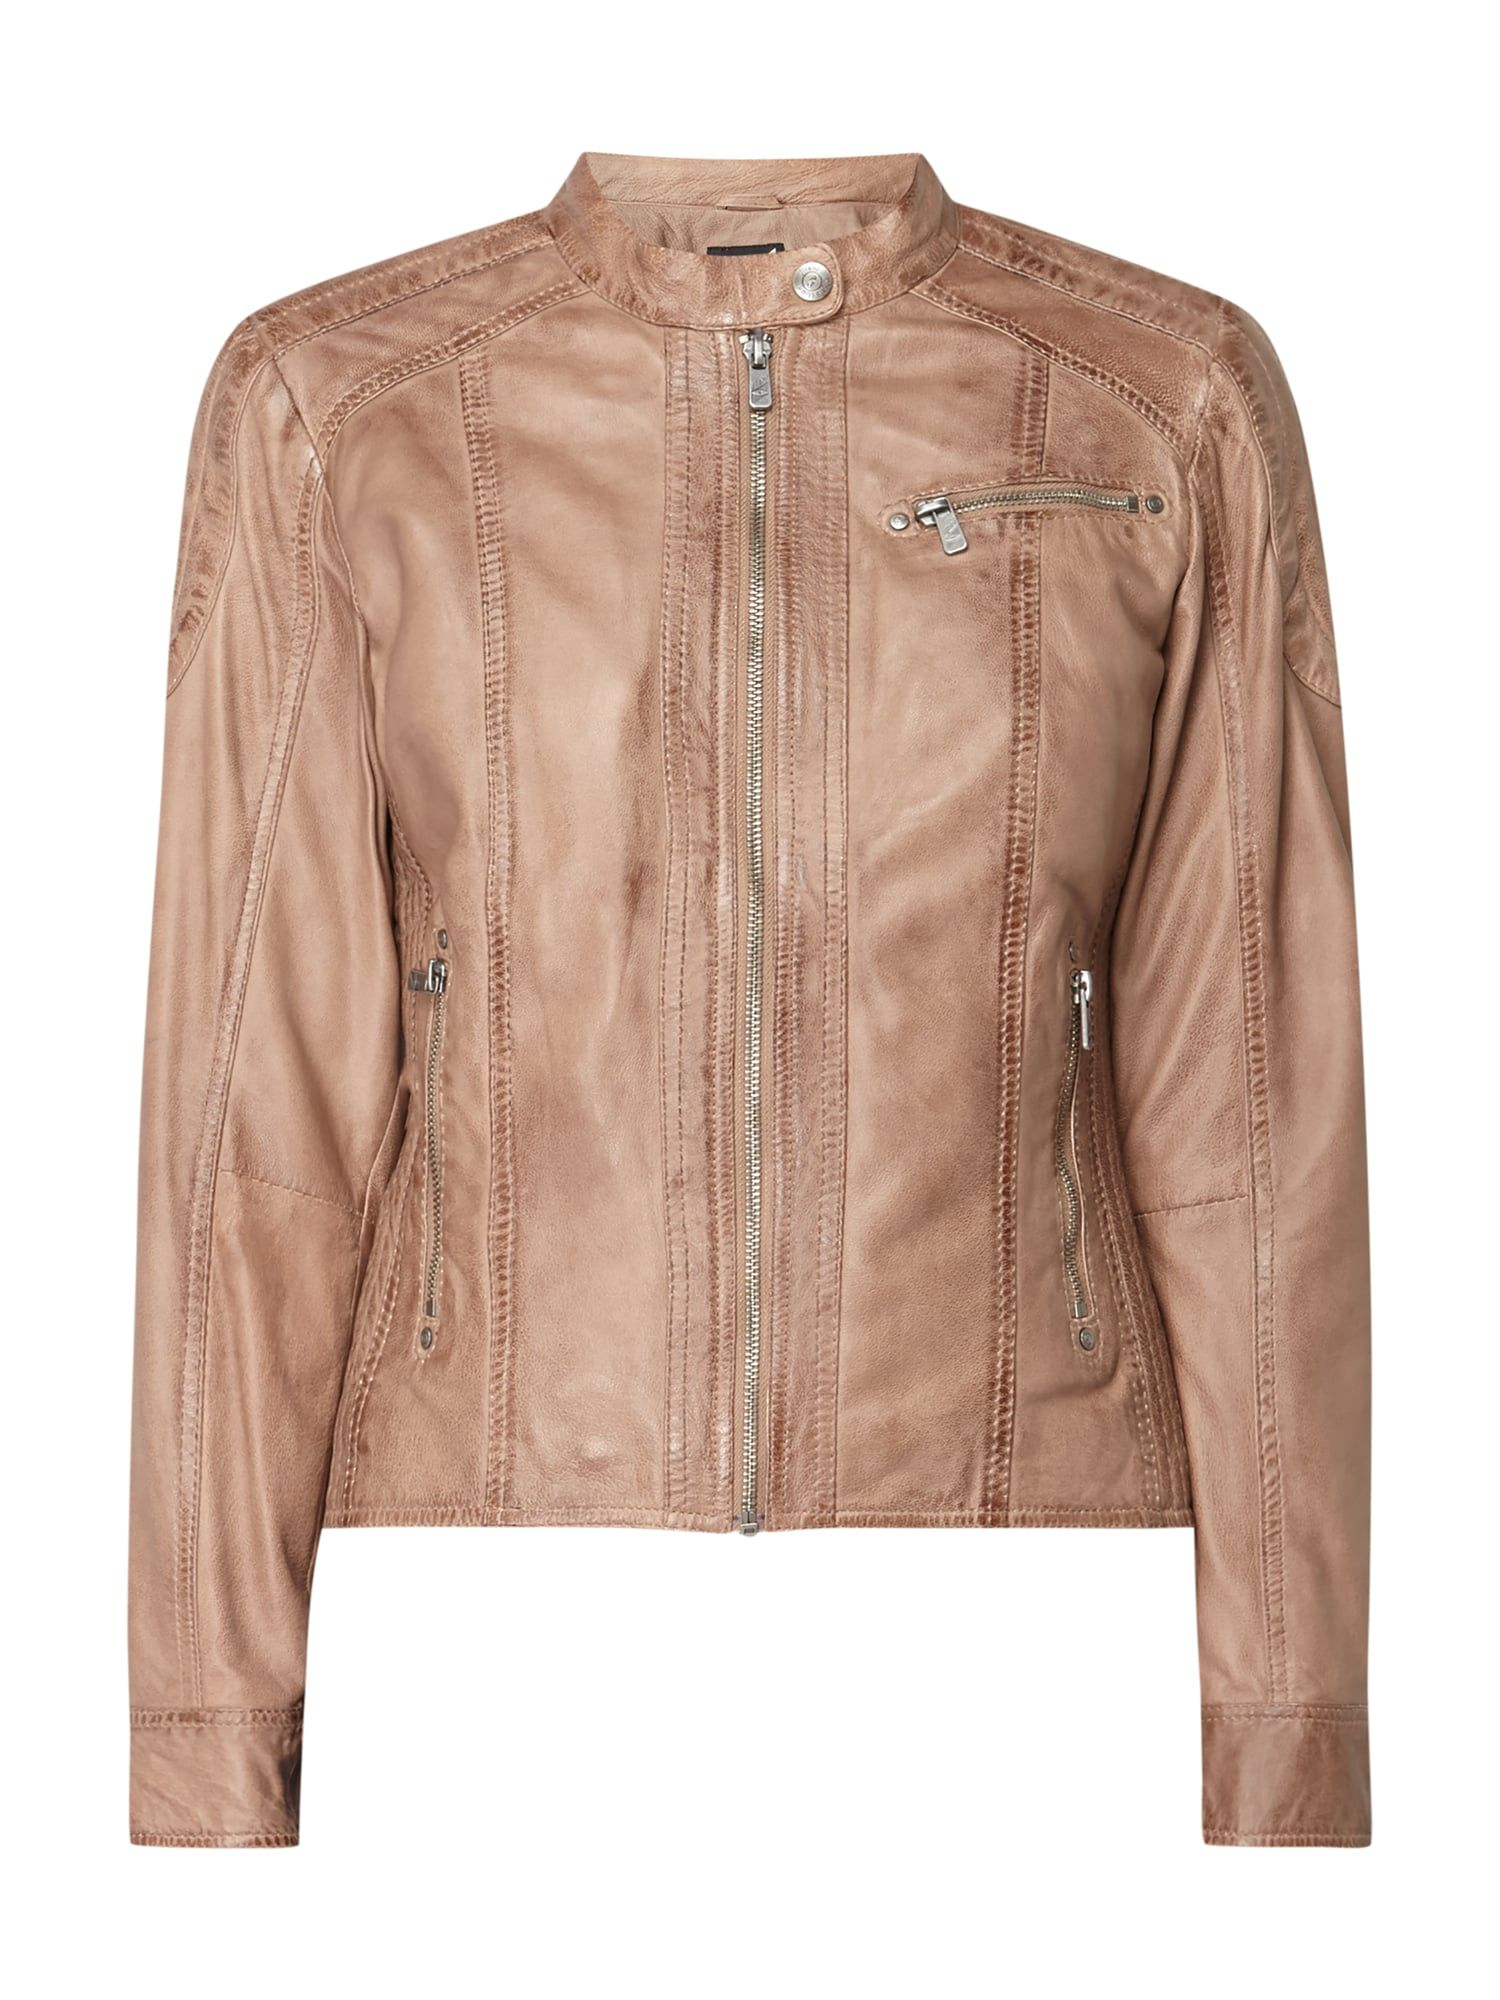 Jilani – Lederjacke im Washed Out Look – Taupe | Lederjacke